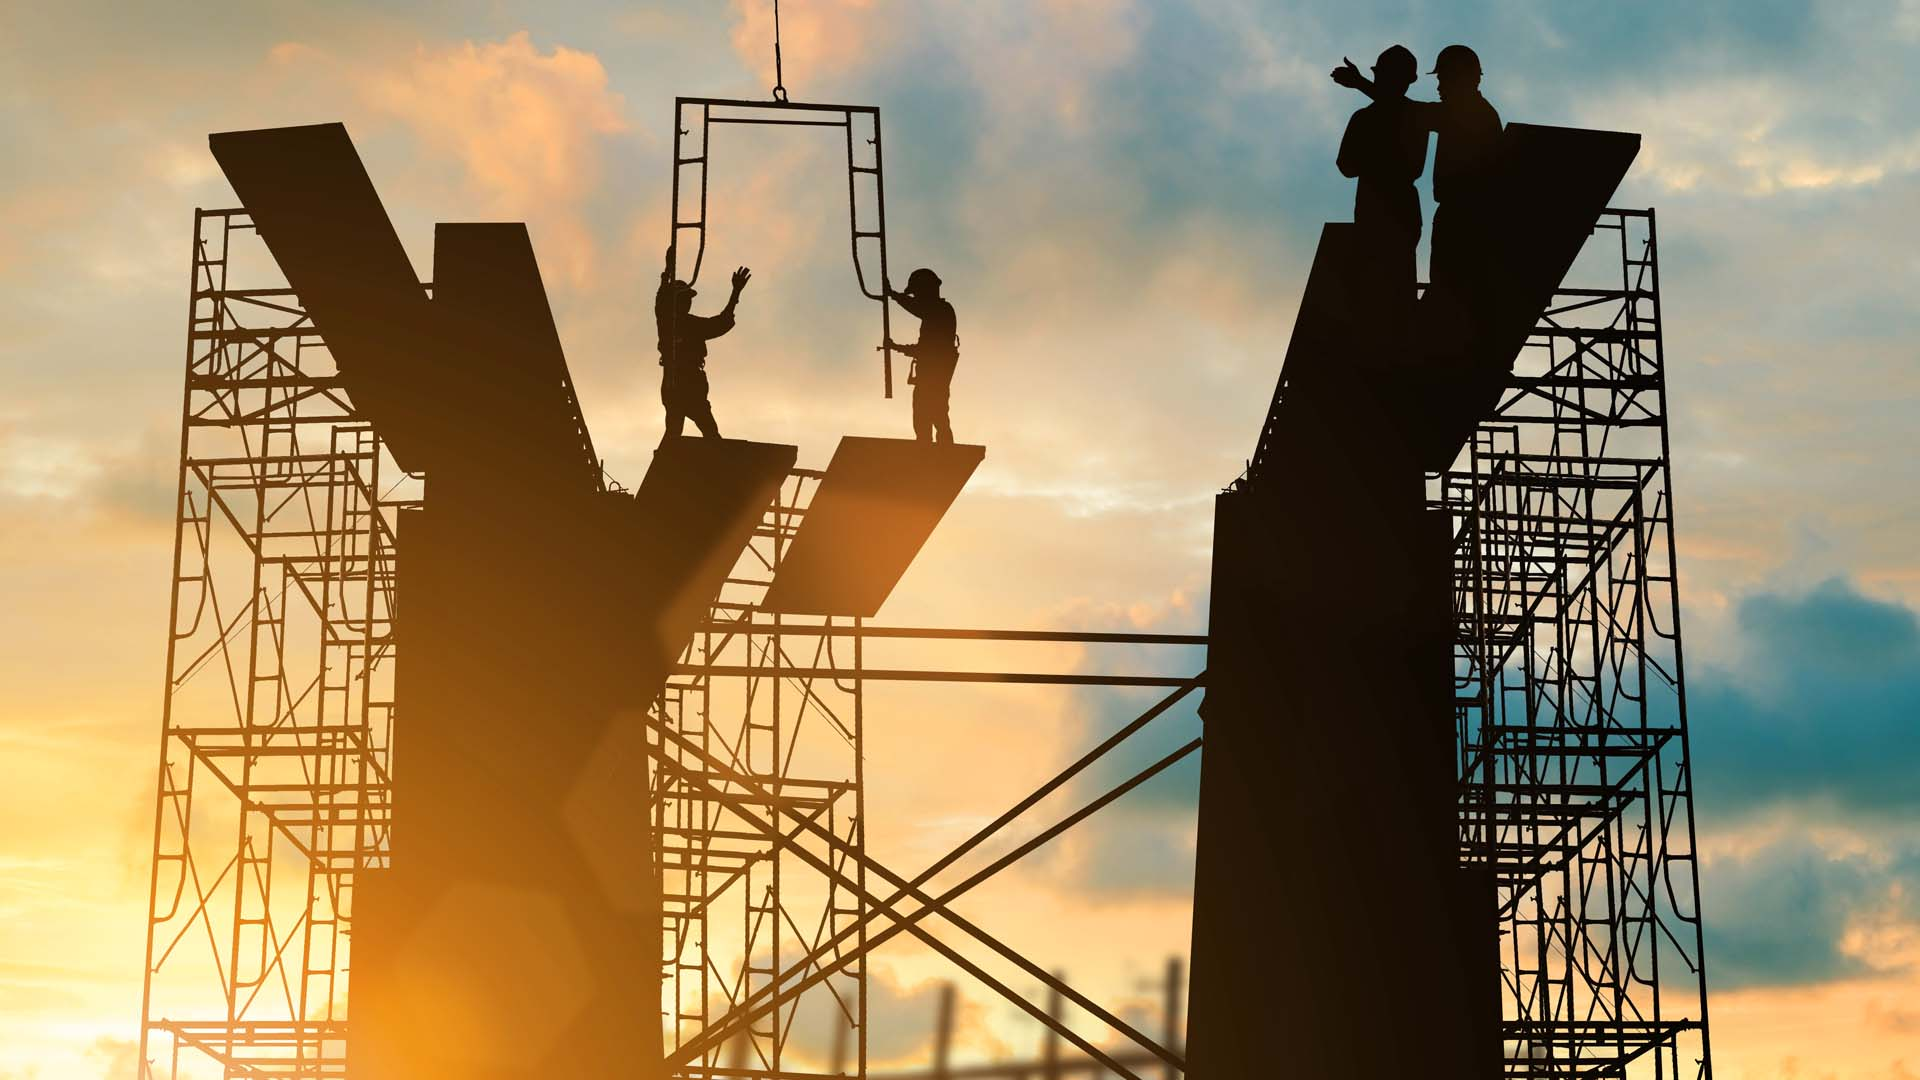 Top 5 Most Violated Safety Regulations in Construction